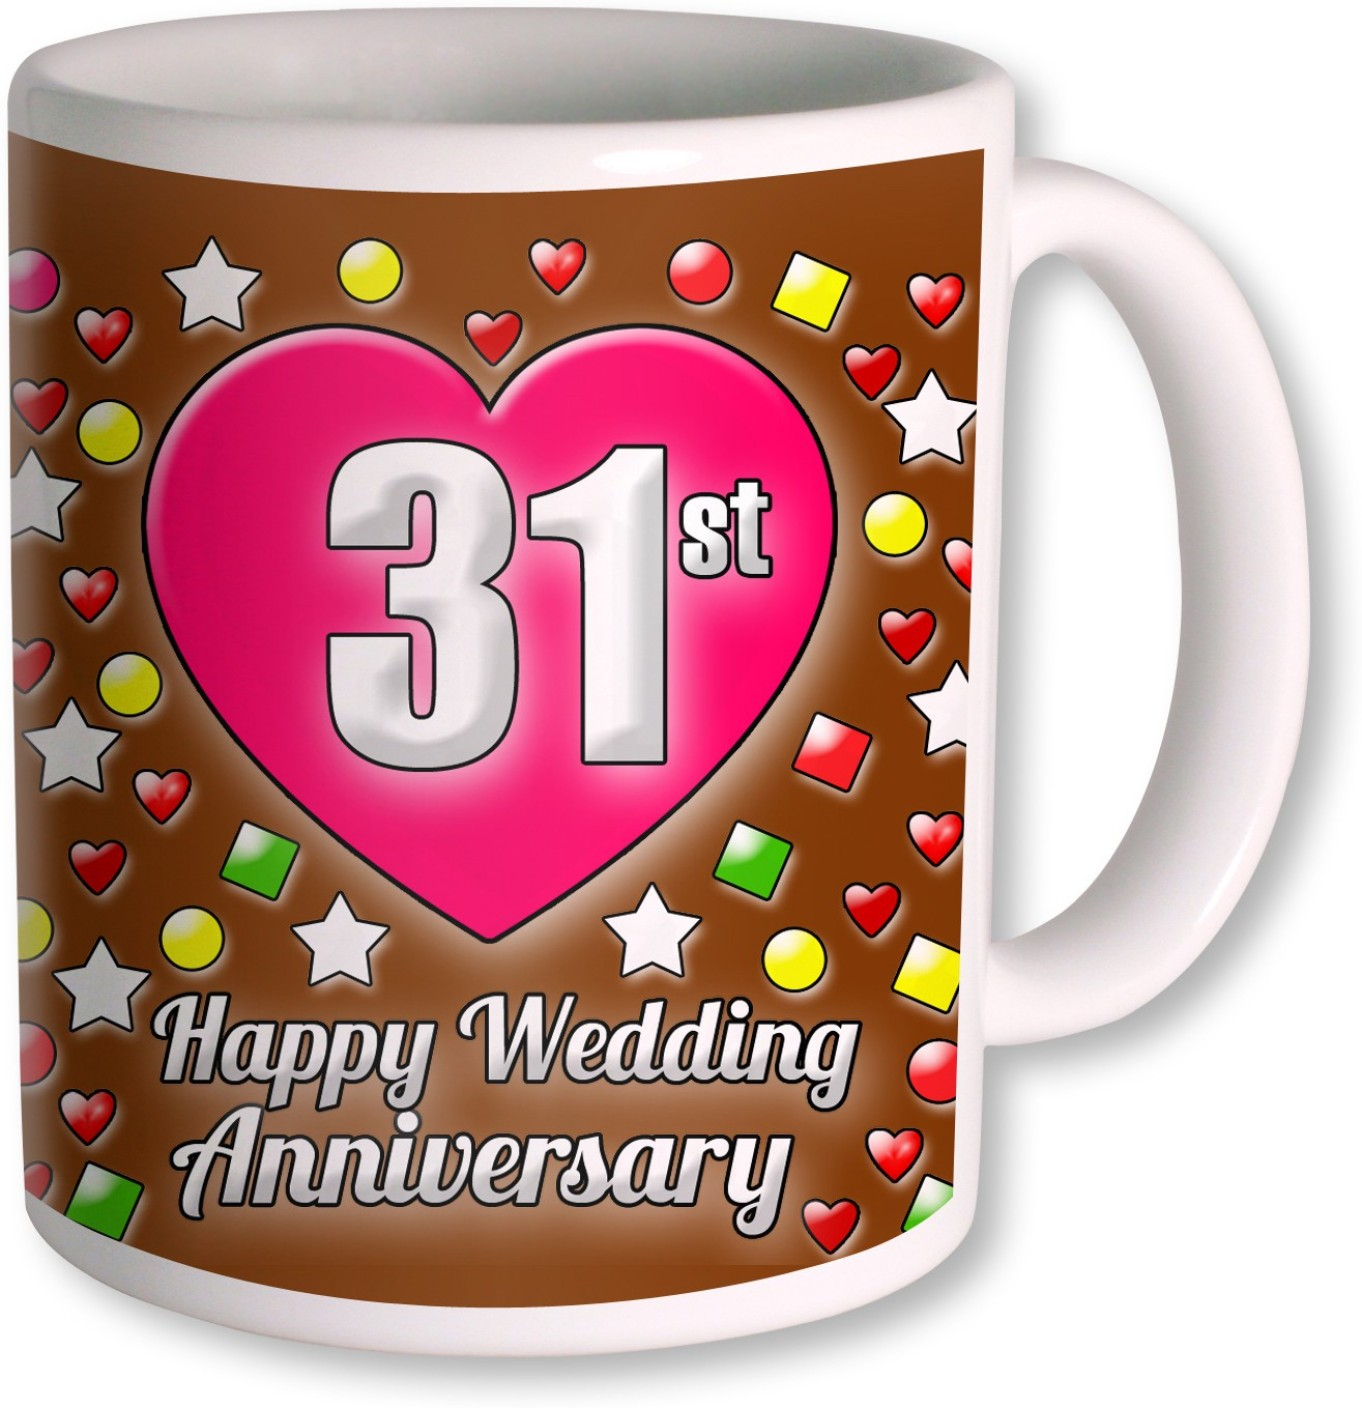 31st Wedding Anniversary Gift Images Decoration Ideas Ftempo